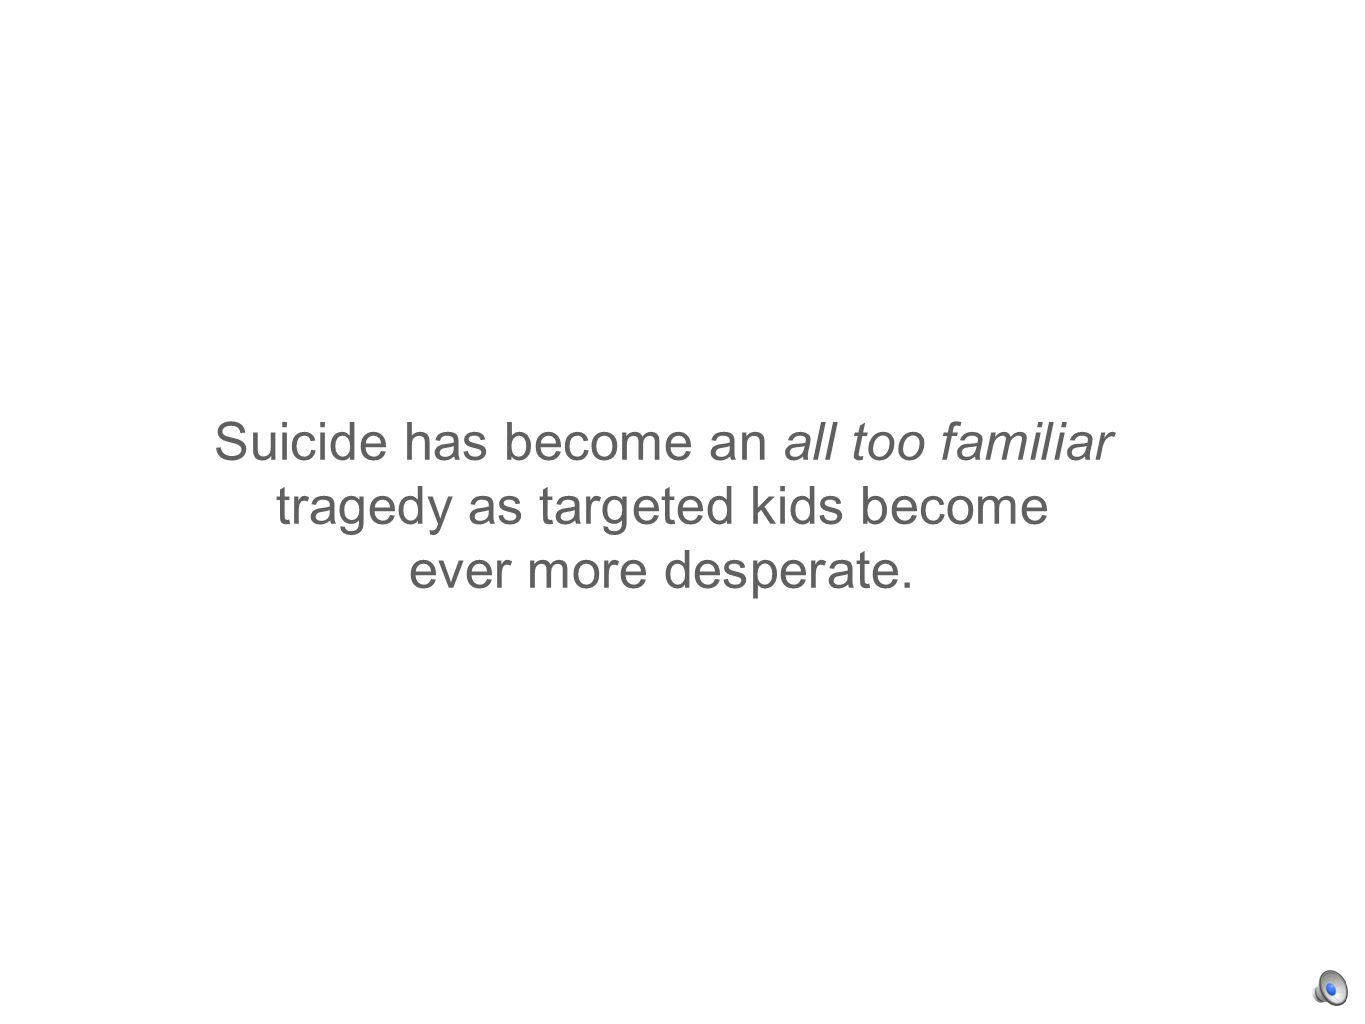 Suicide has become an all too familiar tragedy as targeted kids become ever more desperate.